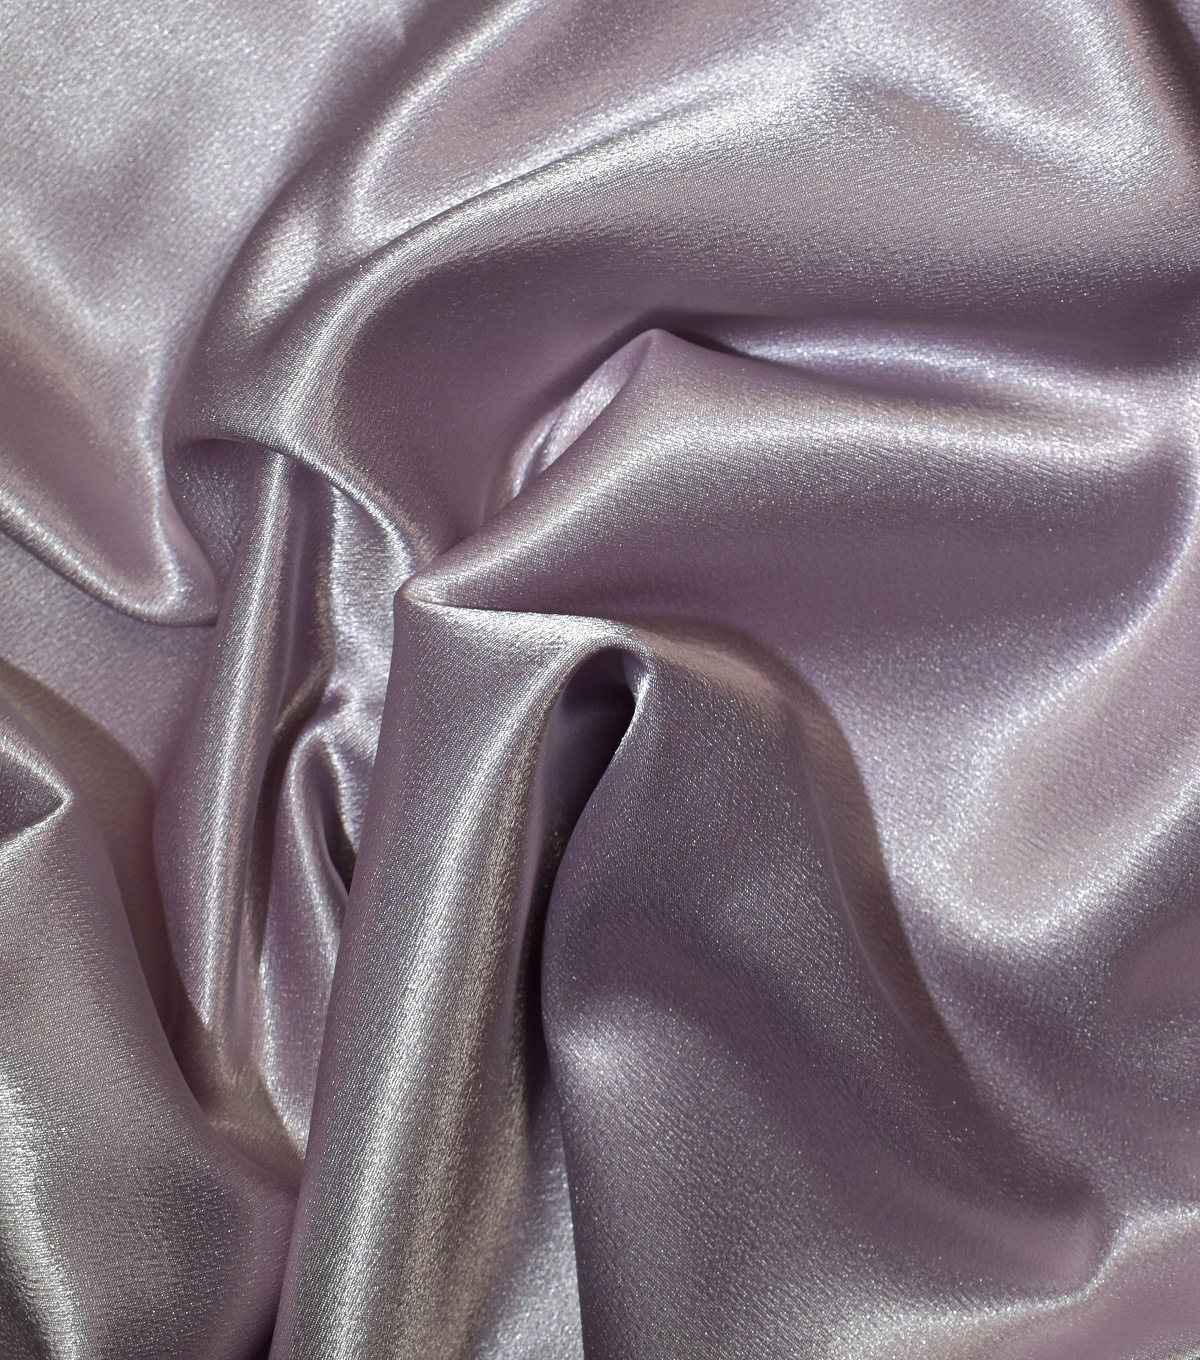 Mint BY THE YARD DRESS GOWN HOME DECOR BRIDAL SOLID CREPE BACK SATIN FABRIC